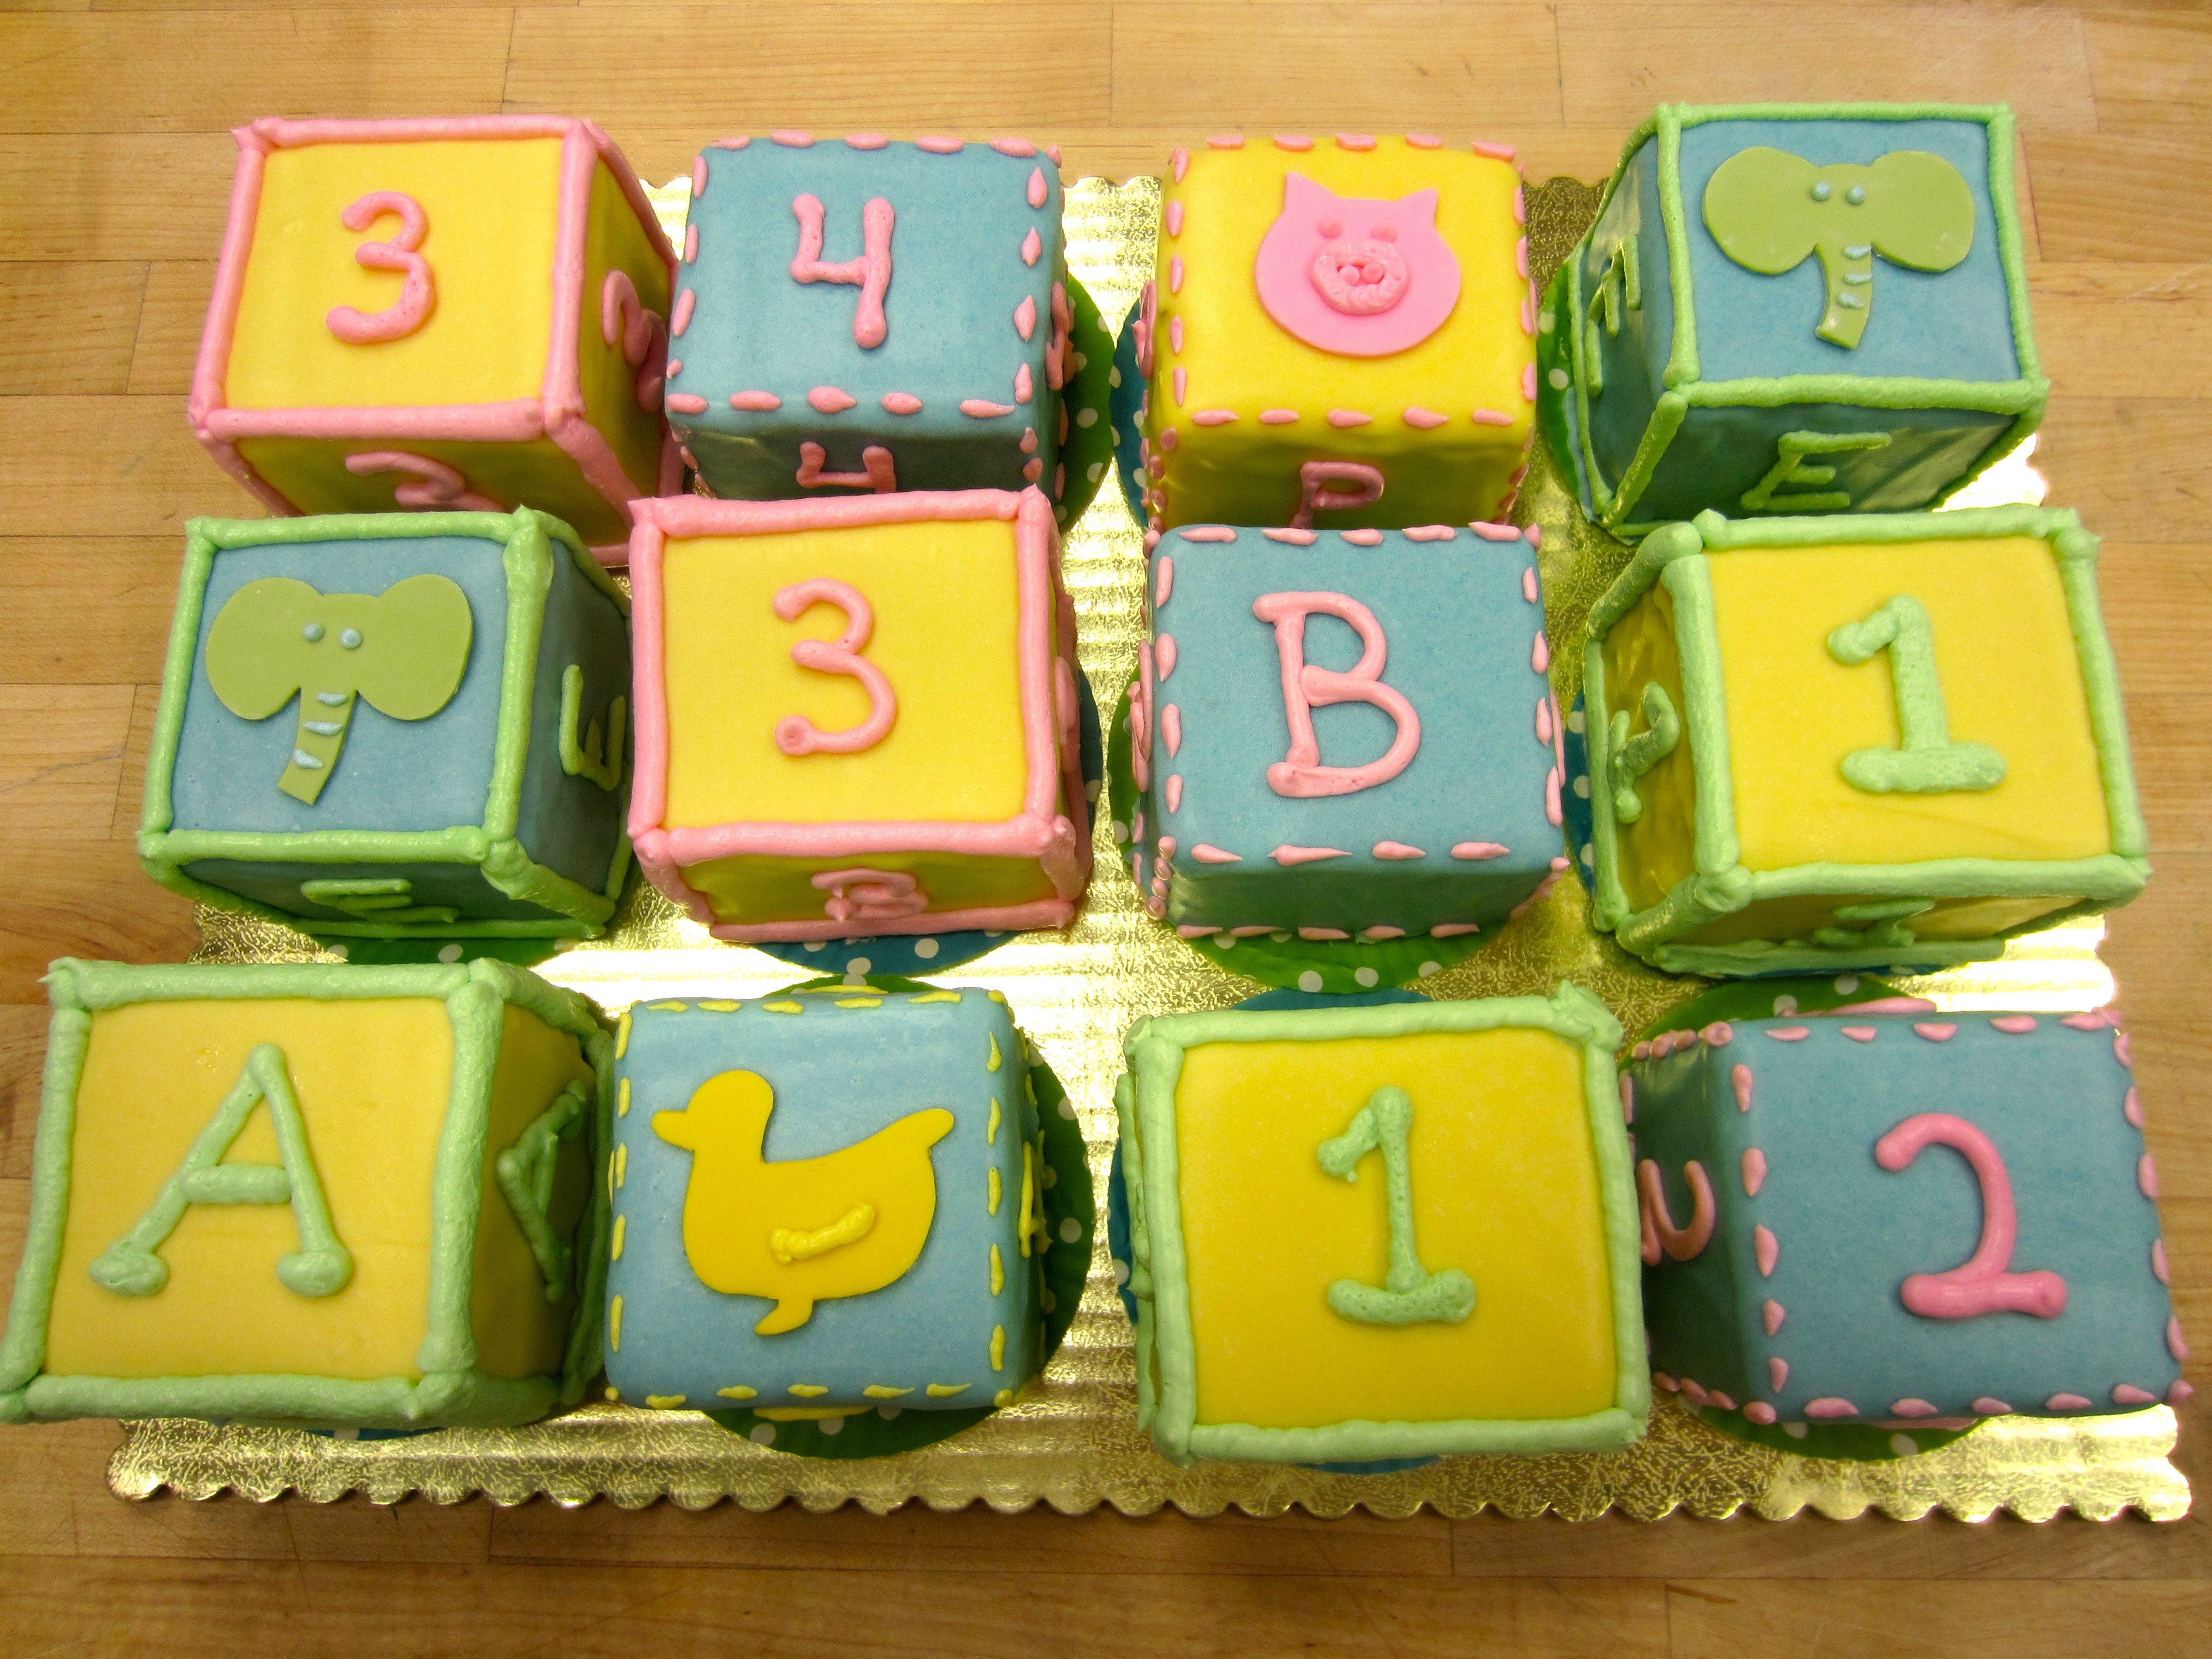 Individual Square Baby Shower Cakes with Duckies & Piggies, etc - Super Cute!